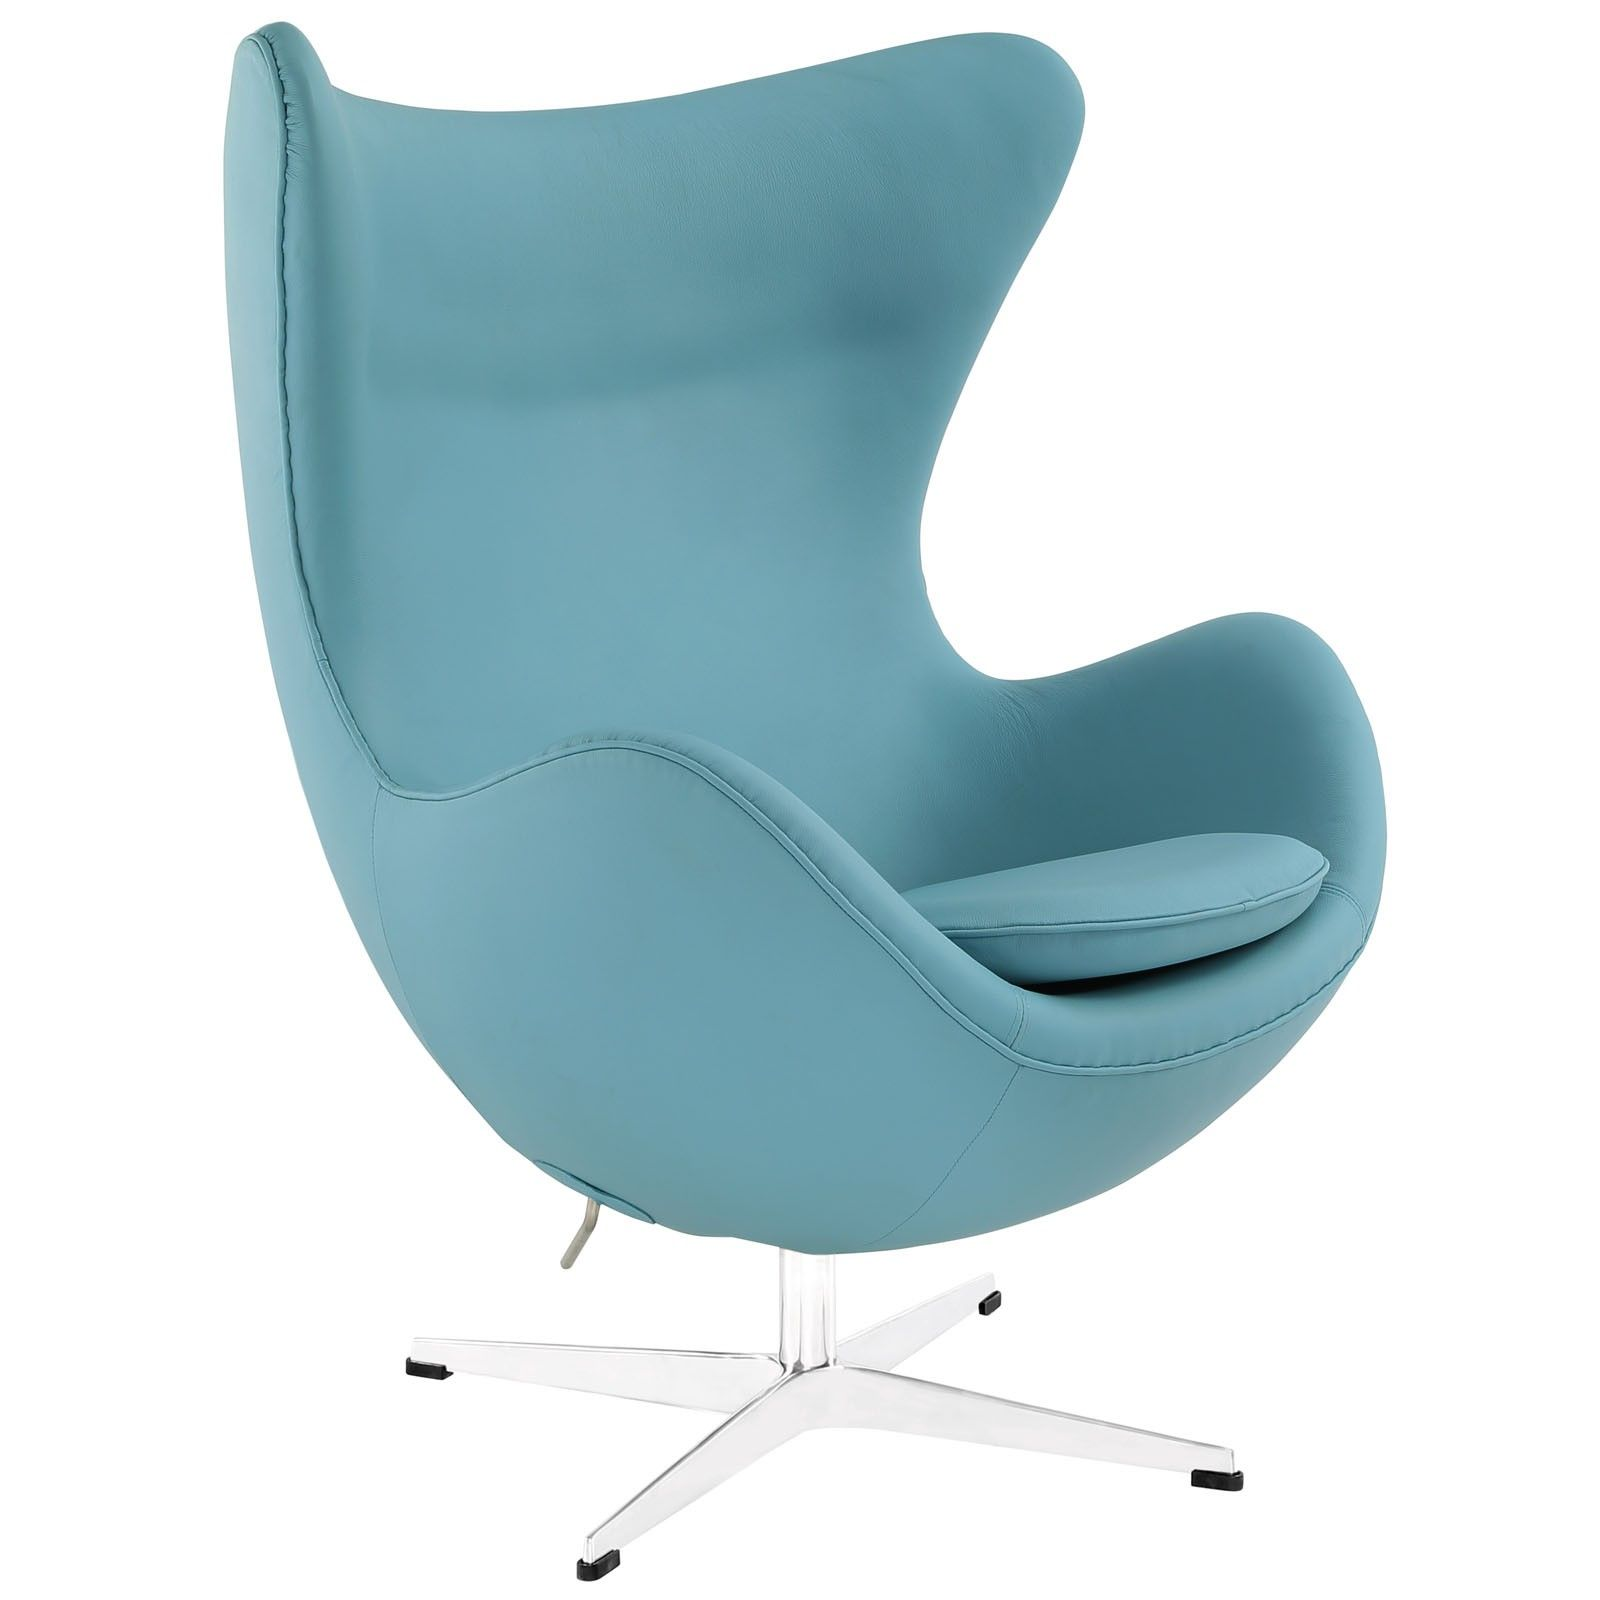 Jacobsen Style Egg Chair in Leather Multiple Colors Materials